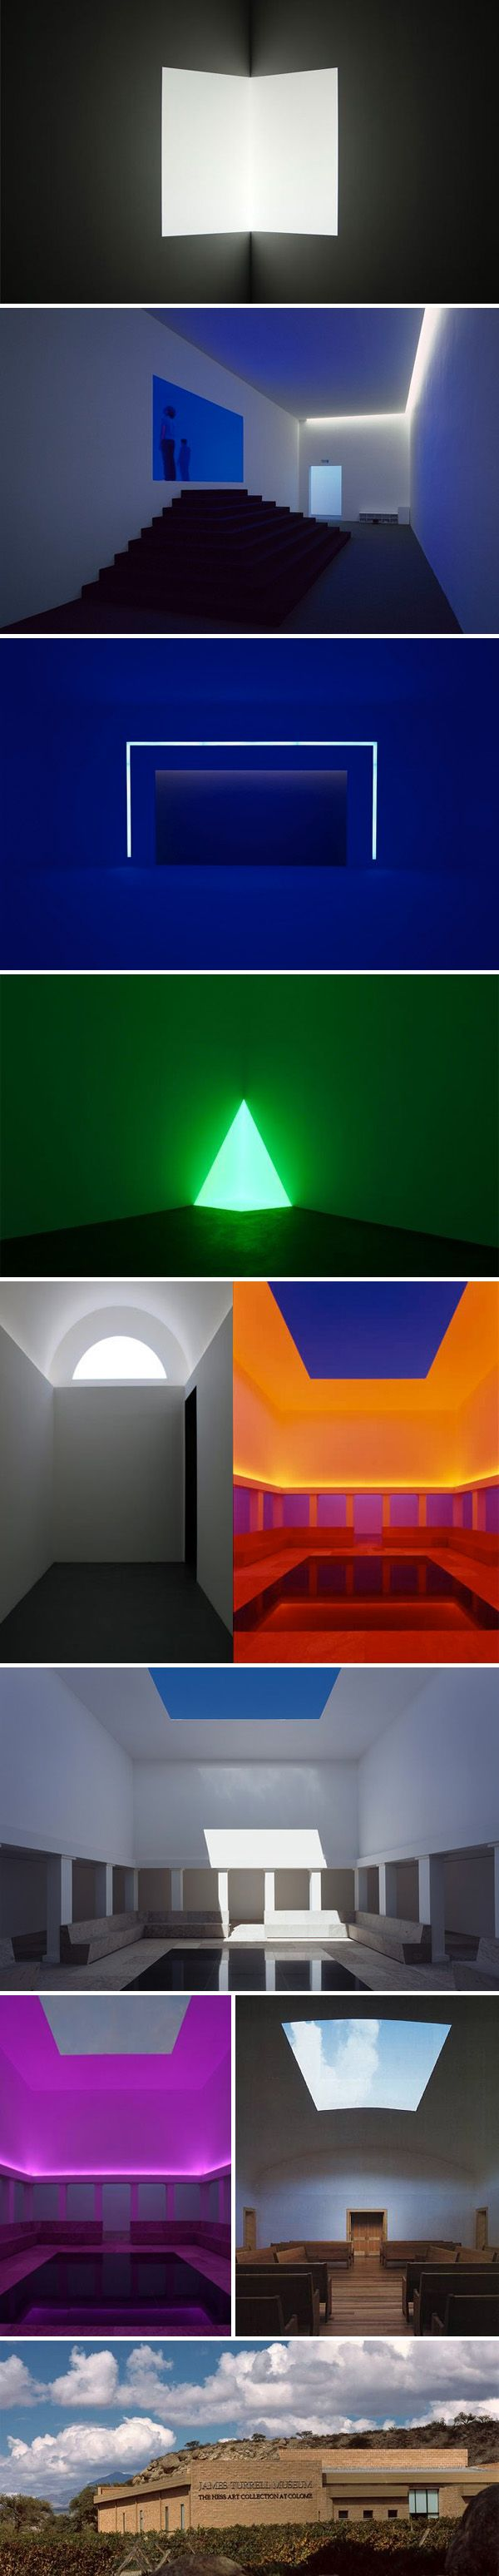 James Turrell Museum's excellent exposition exploring interactions between light and space.